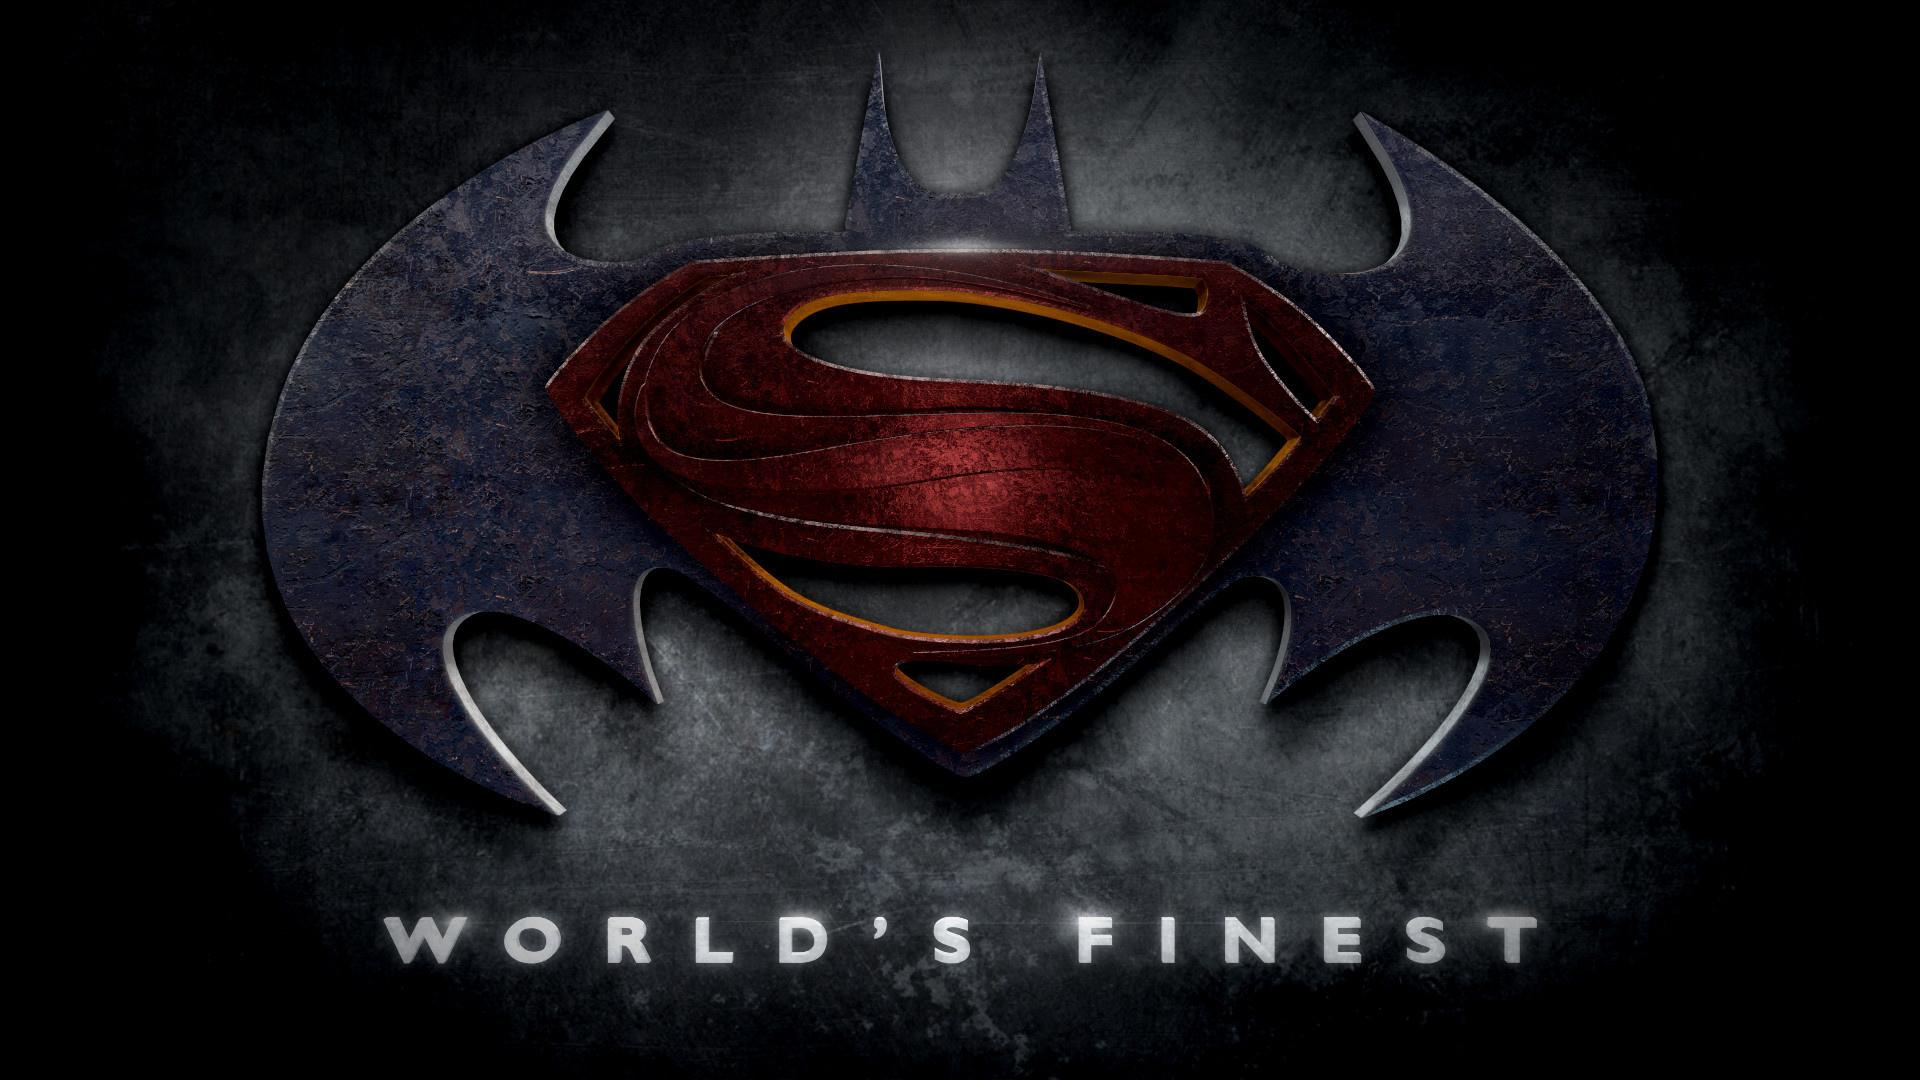 World s Finest at 1600 x 1200 size wallpapers HD quality